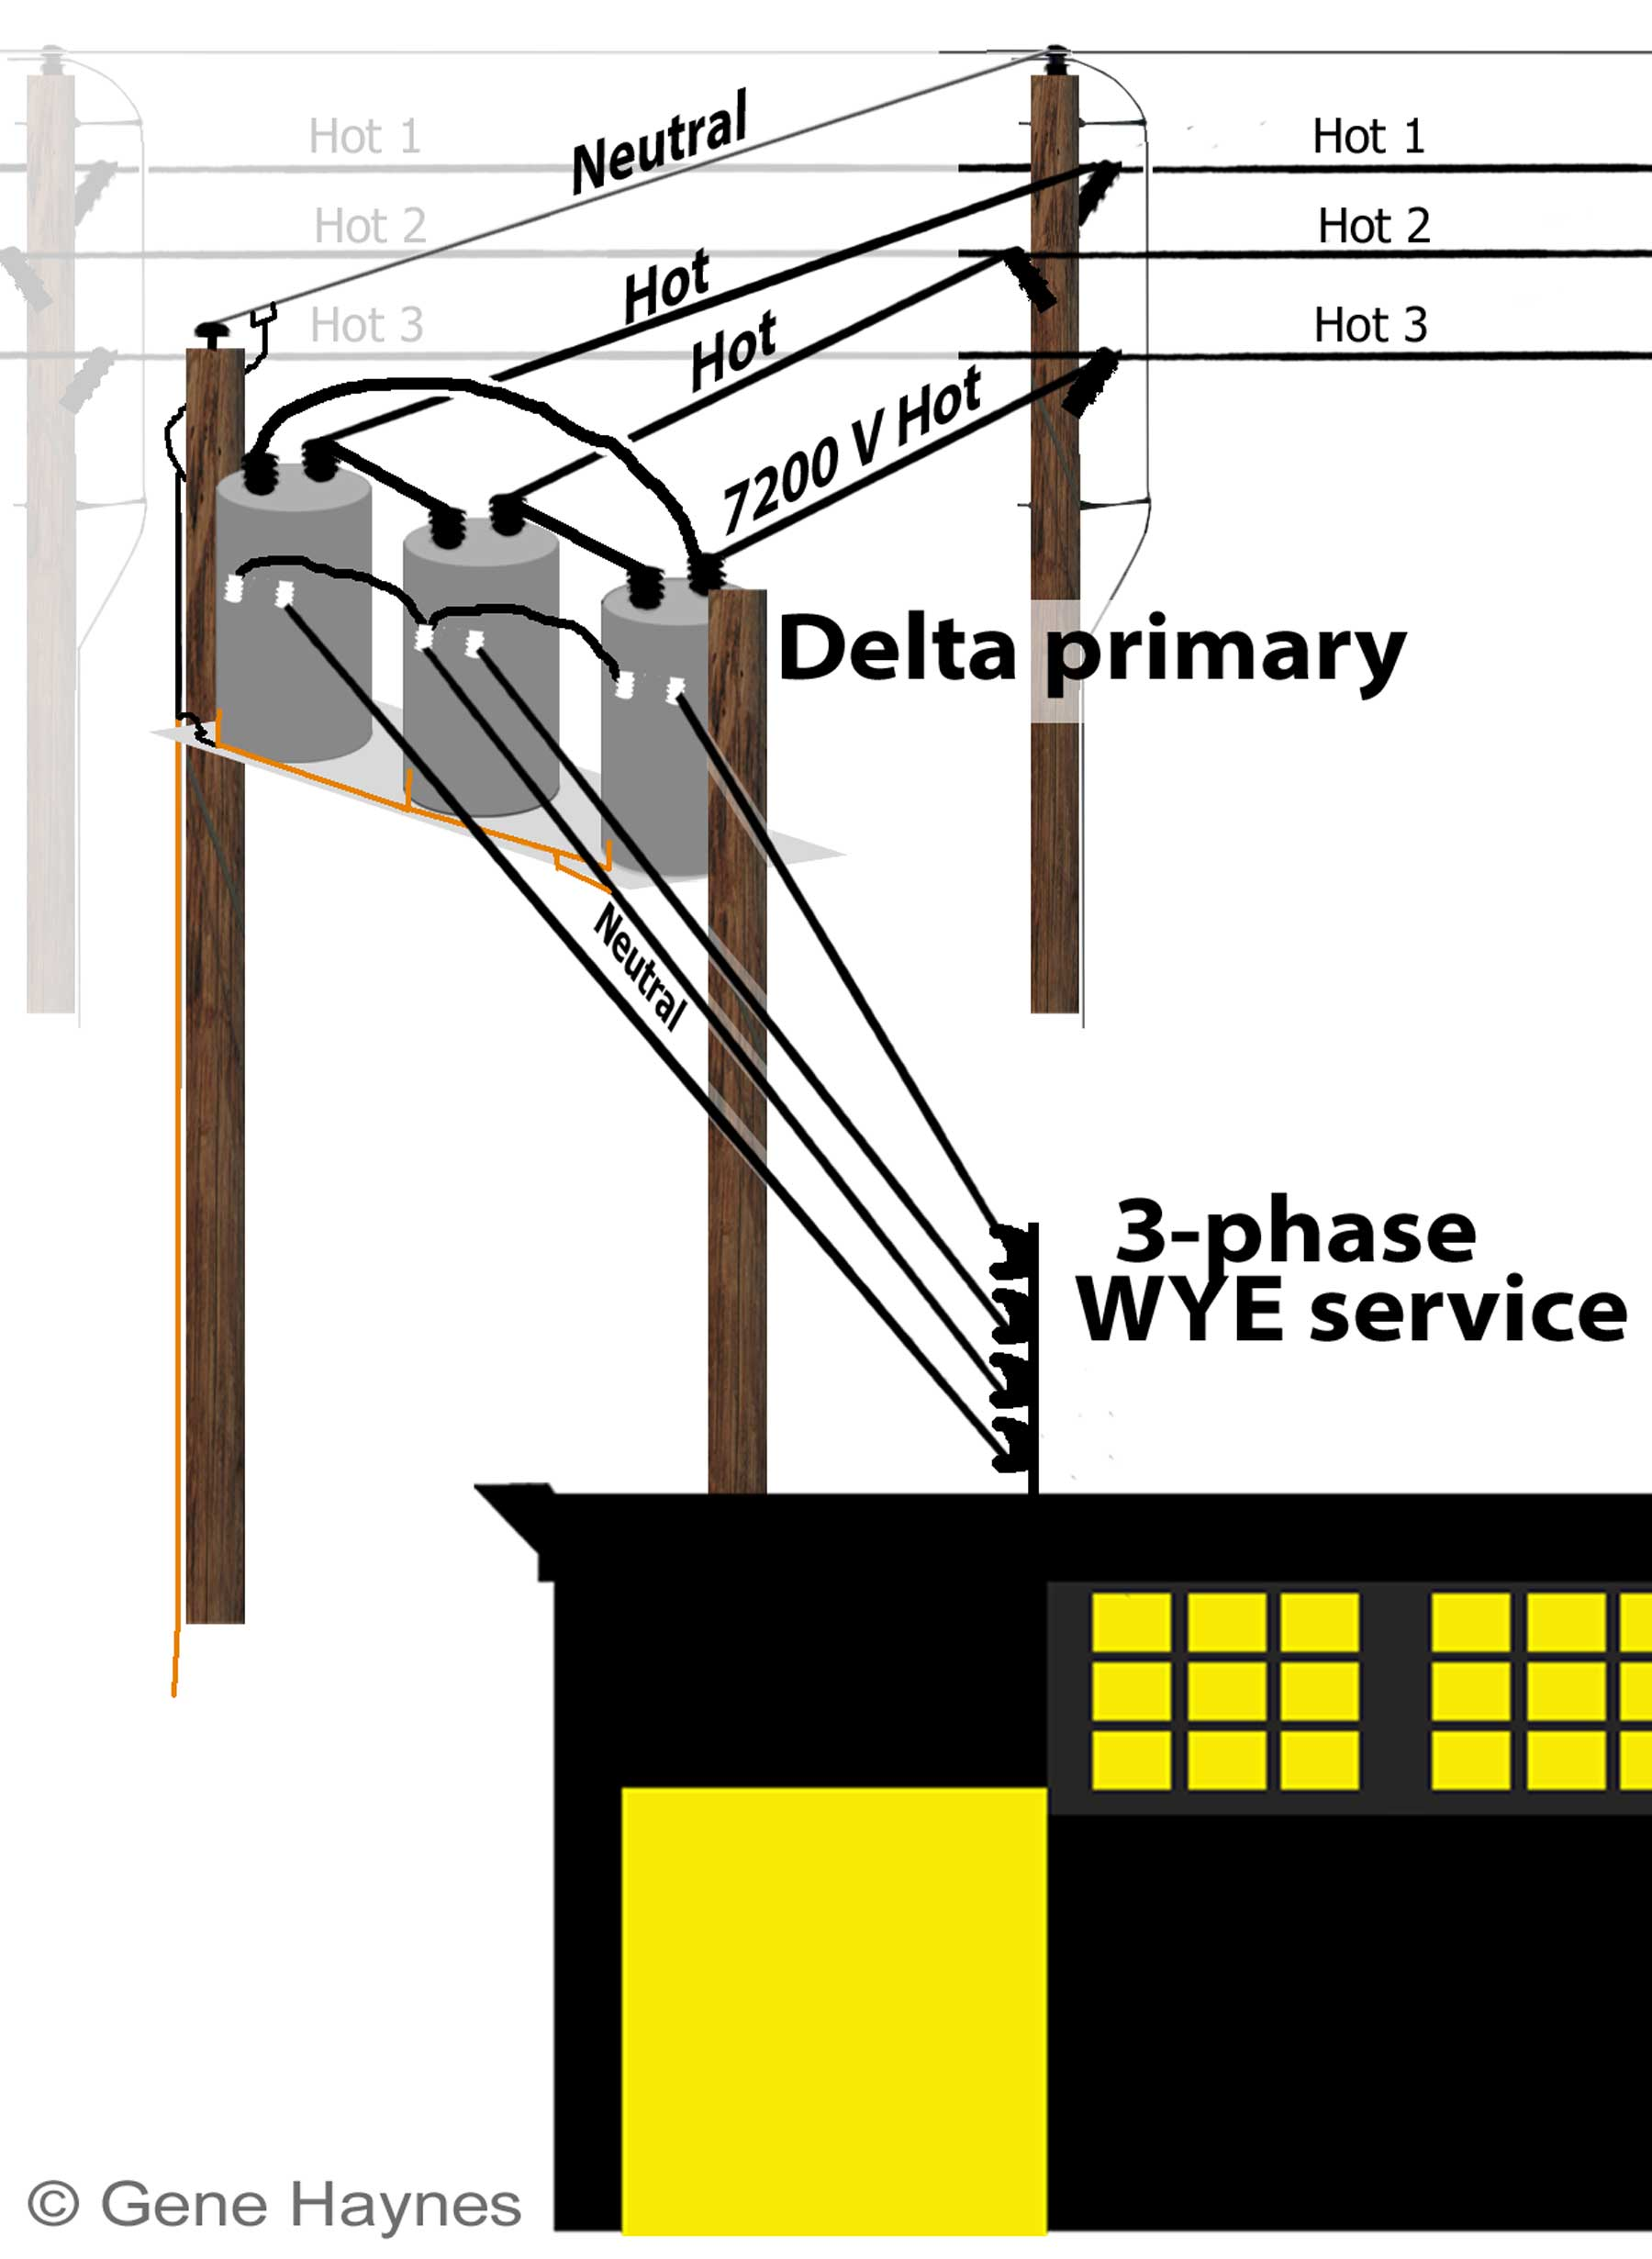 Electricity from plant to distribution transformer to business delta2I how to identify transformer wiring